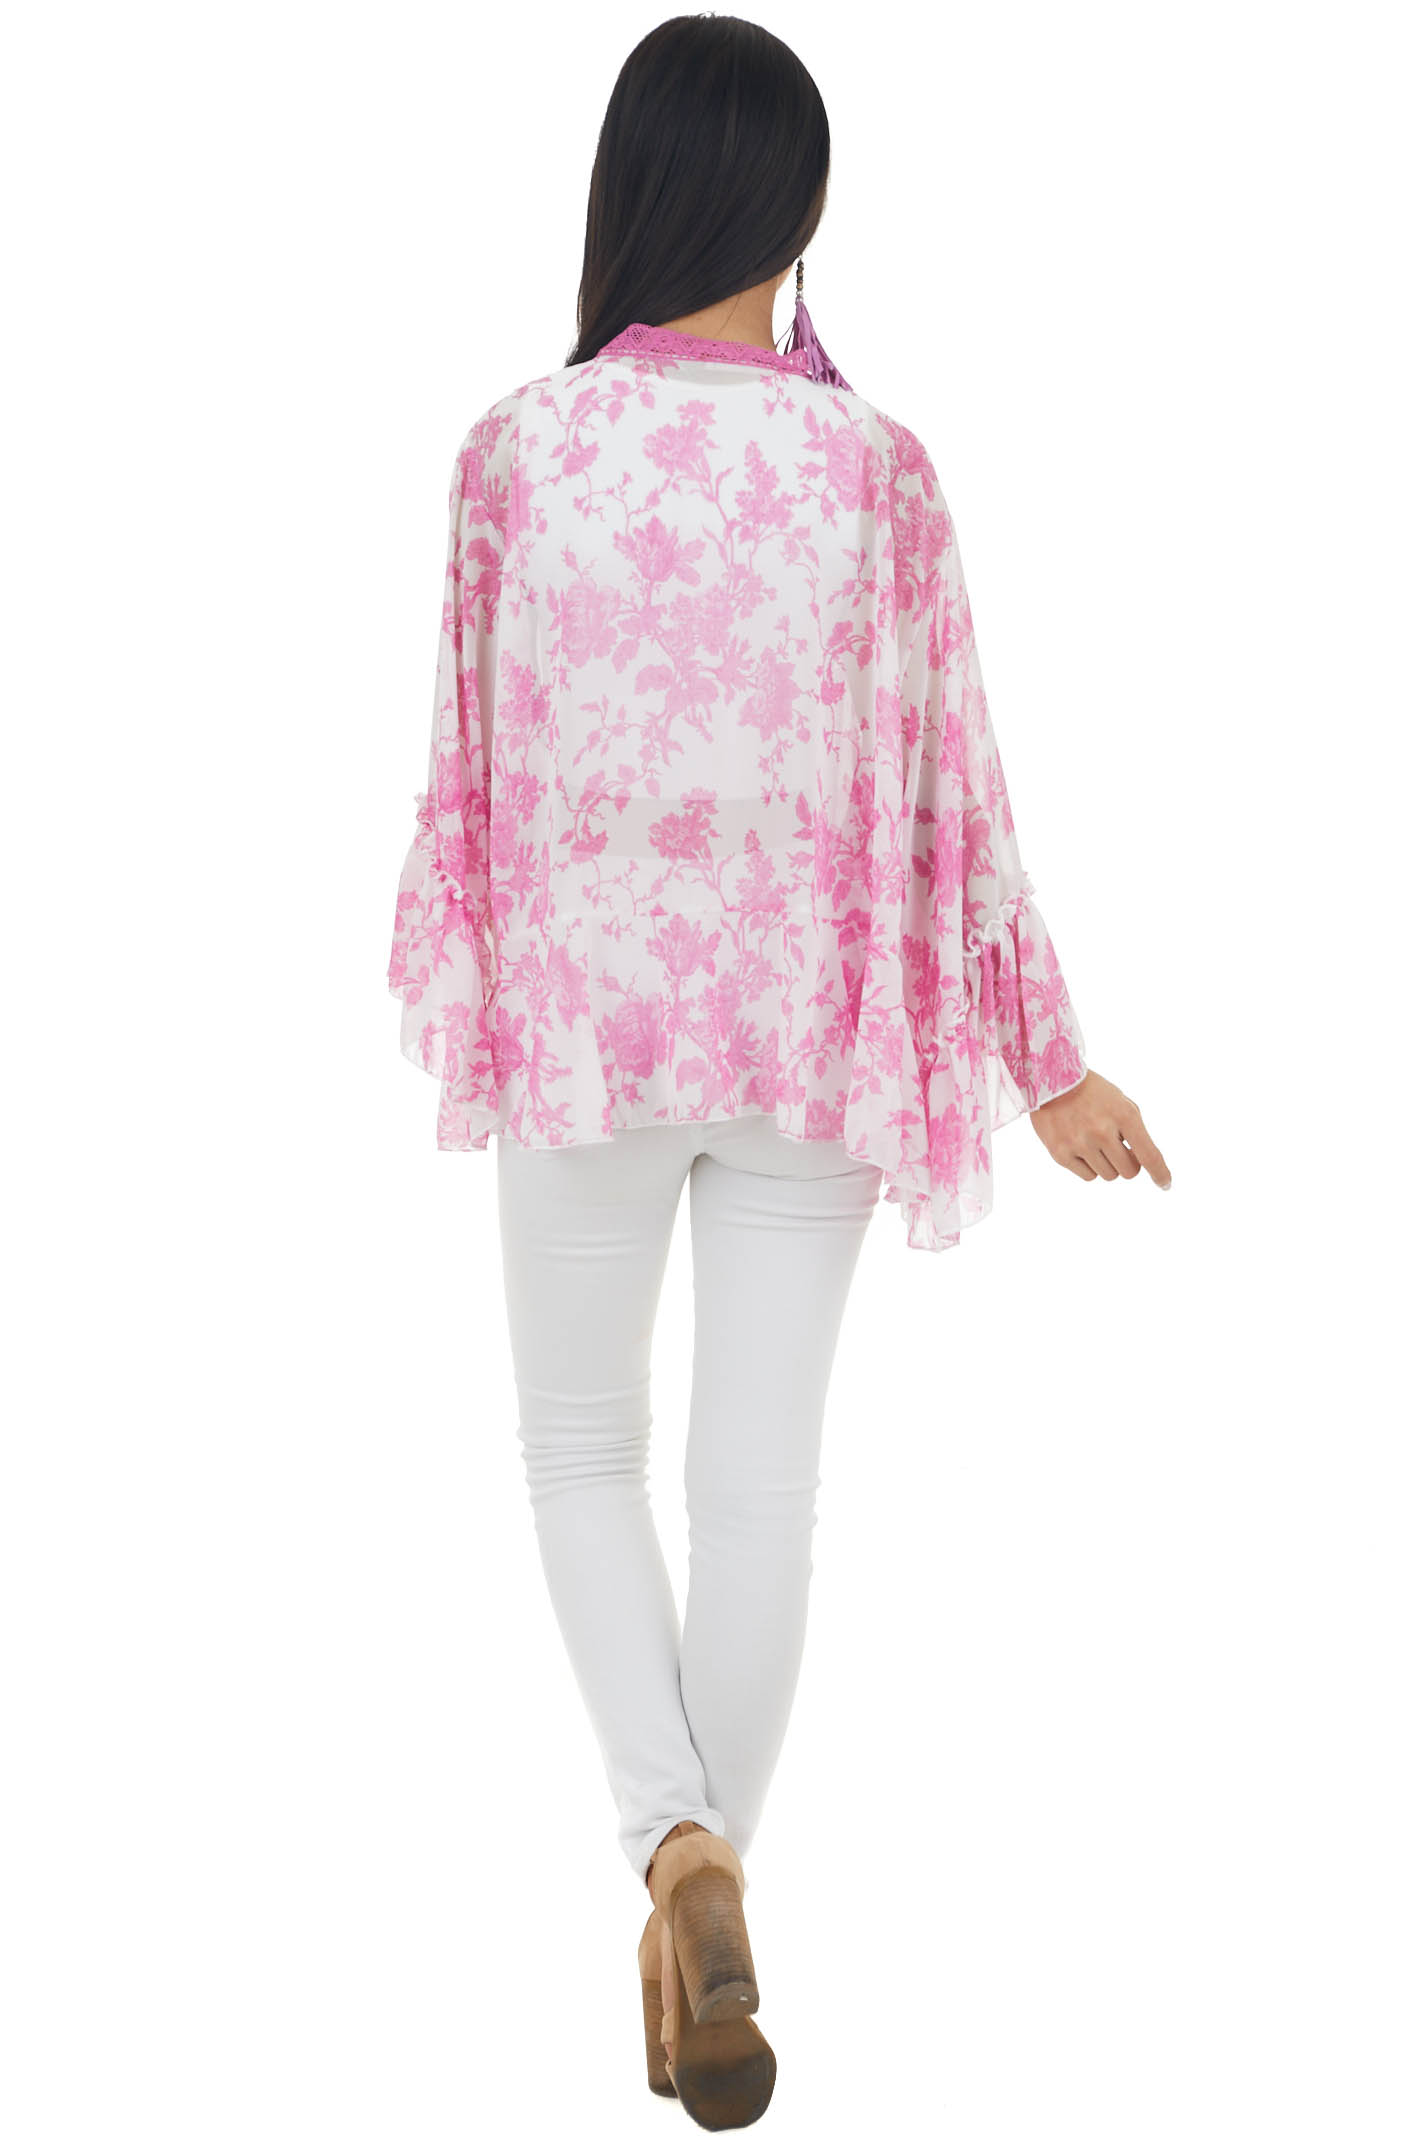 Fuchsia and Ivory Floral Open Front Kimono with Lace Detail